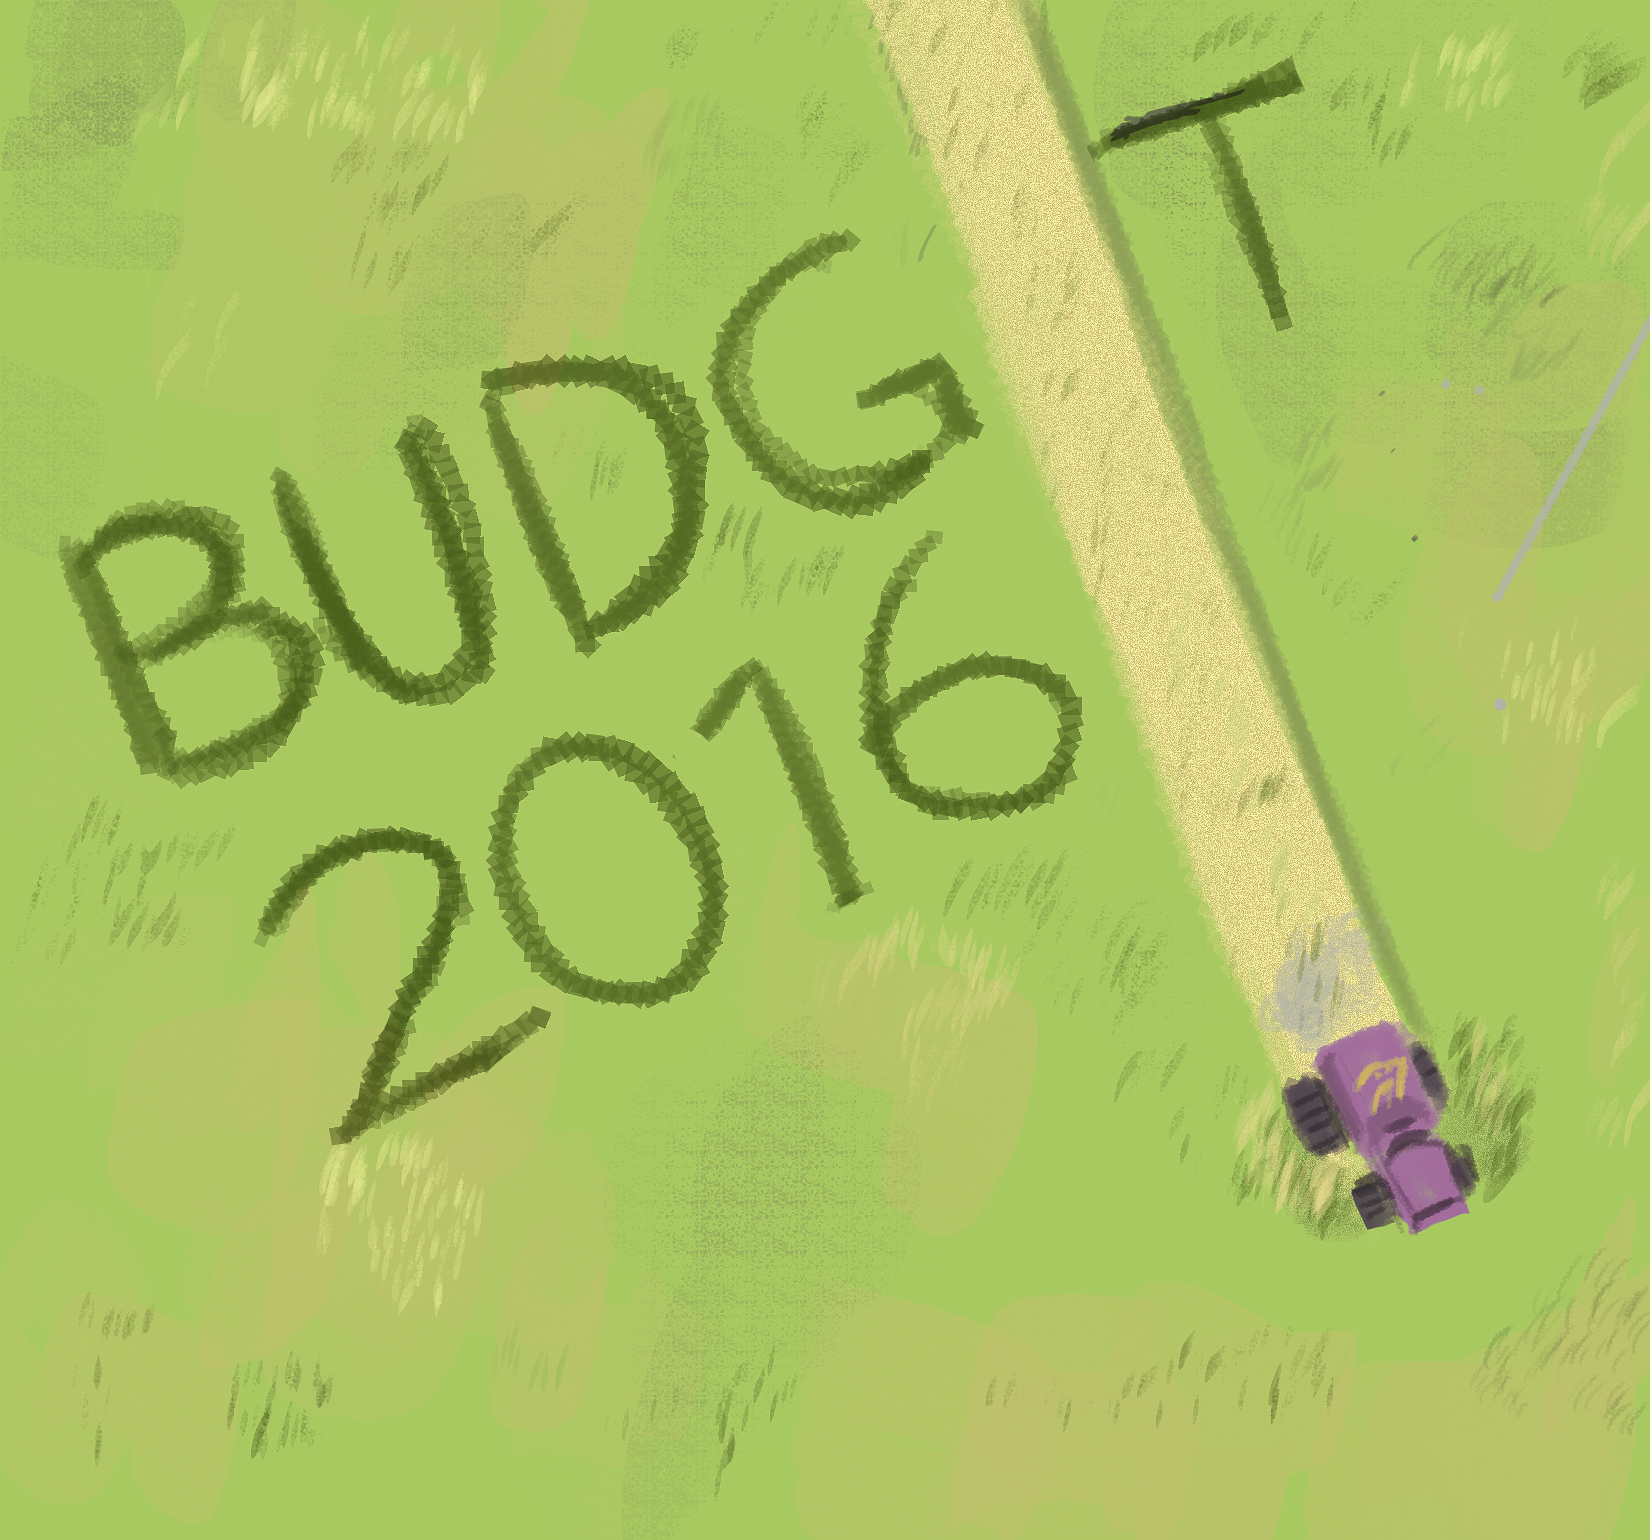 Budget cuts to be announced